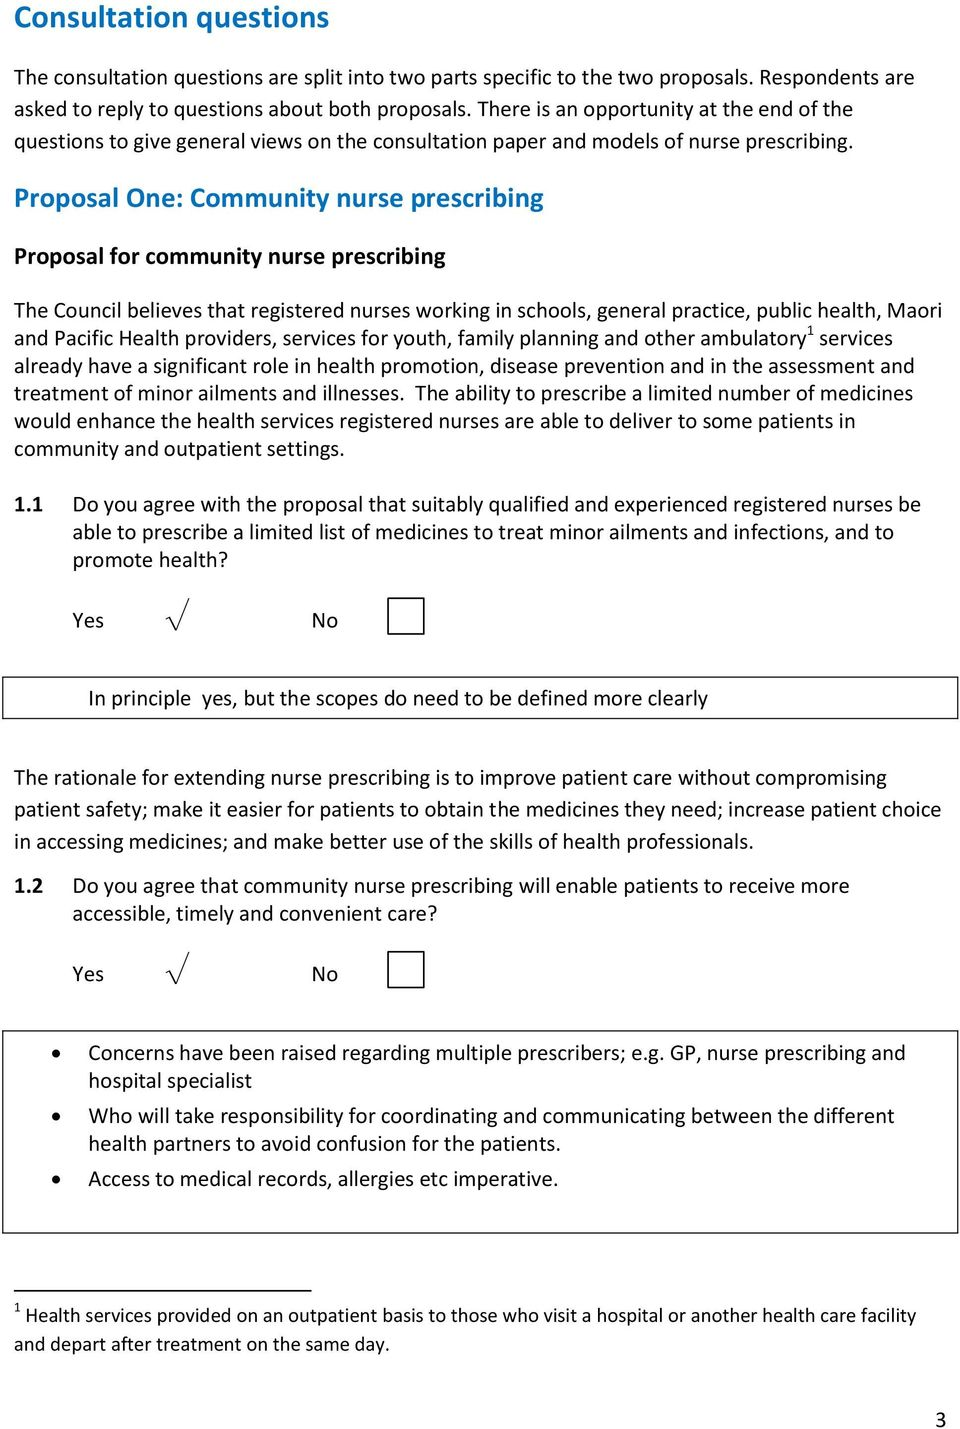 Proposal One: Community nurse prescribing Proposal for community nurse prescribing The Council believes that registered nurses working in schools, general practice, public health, Maori and Pacific